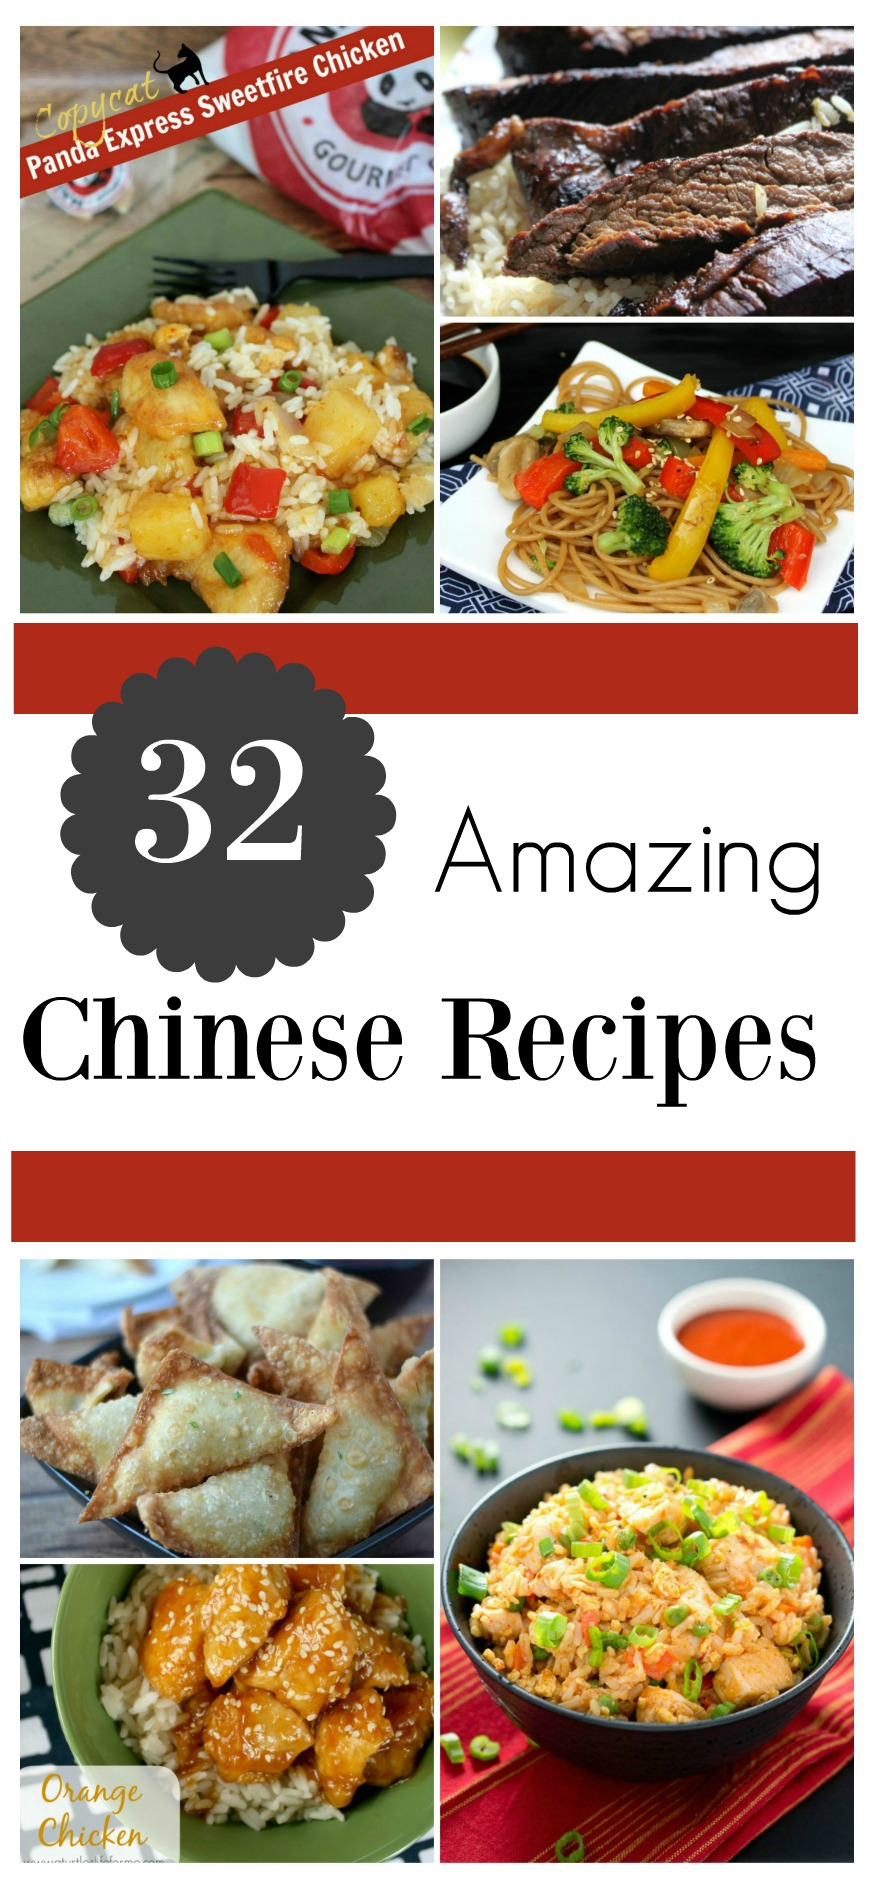 Does your family love Chinese take out? Check out these 32 Amazing Chinese Recipes, including copycat recipes & healthy version of your favorite dishes here!